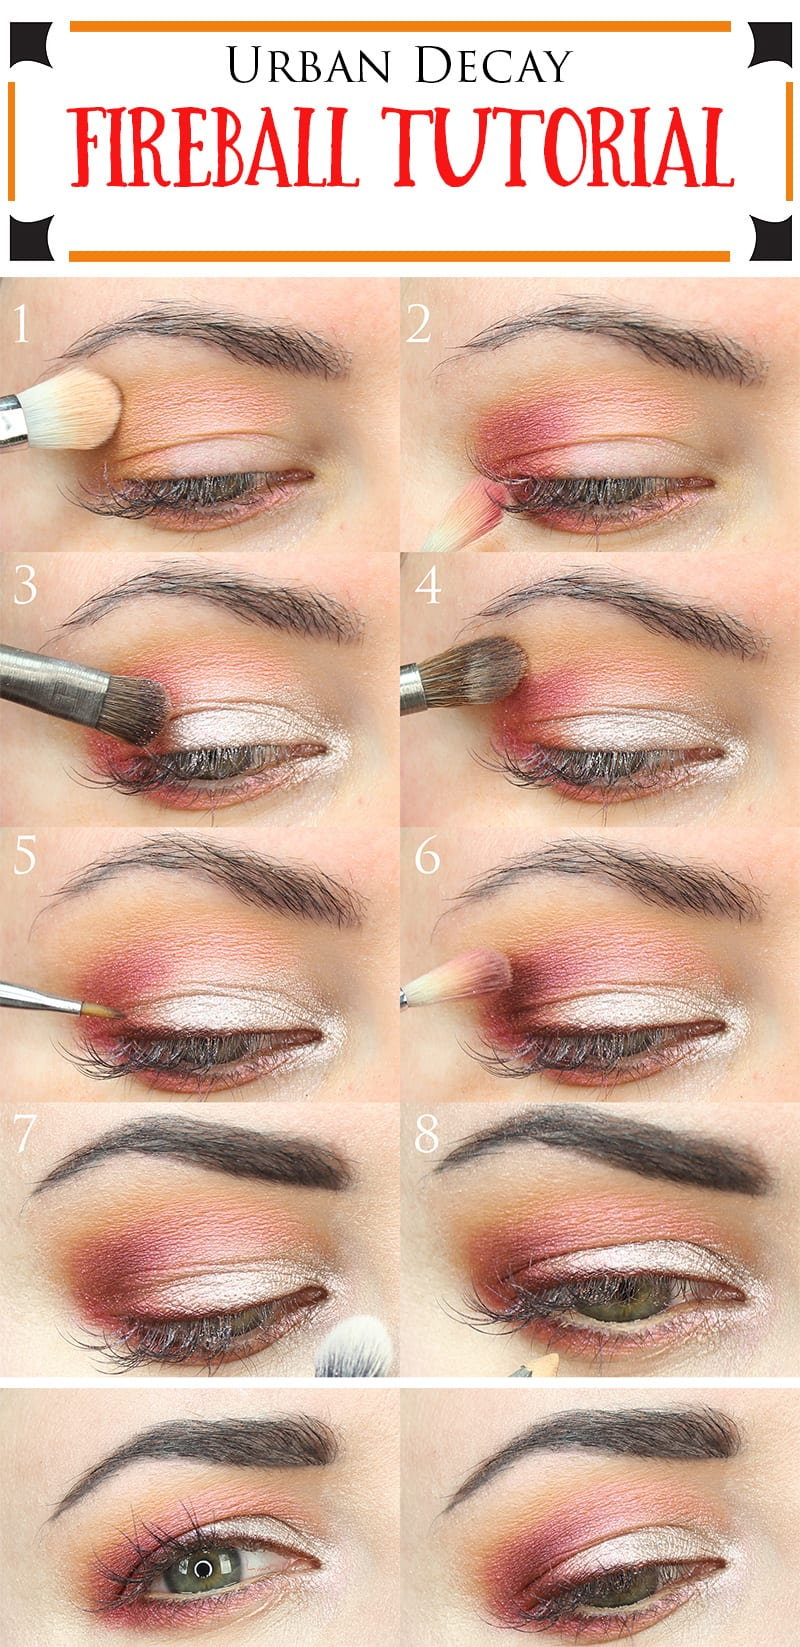 Urban Decay Fireball Tutorial Great For All Eye Shapes